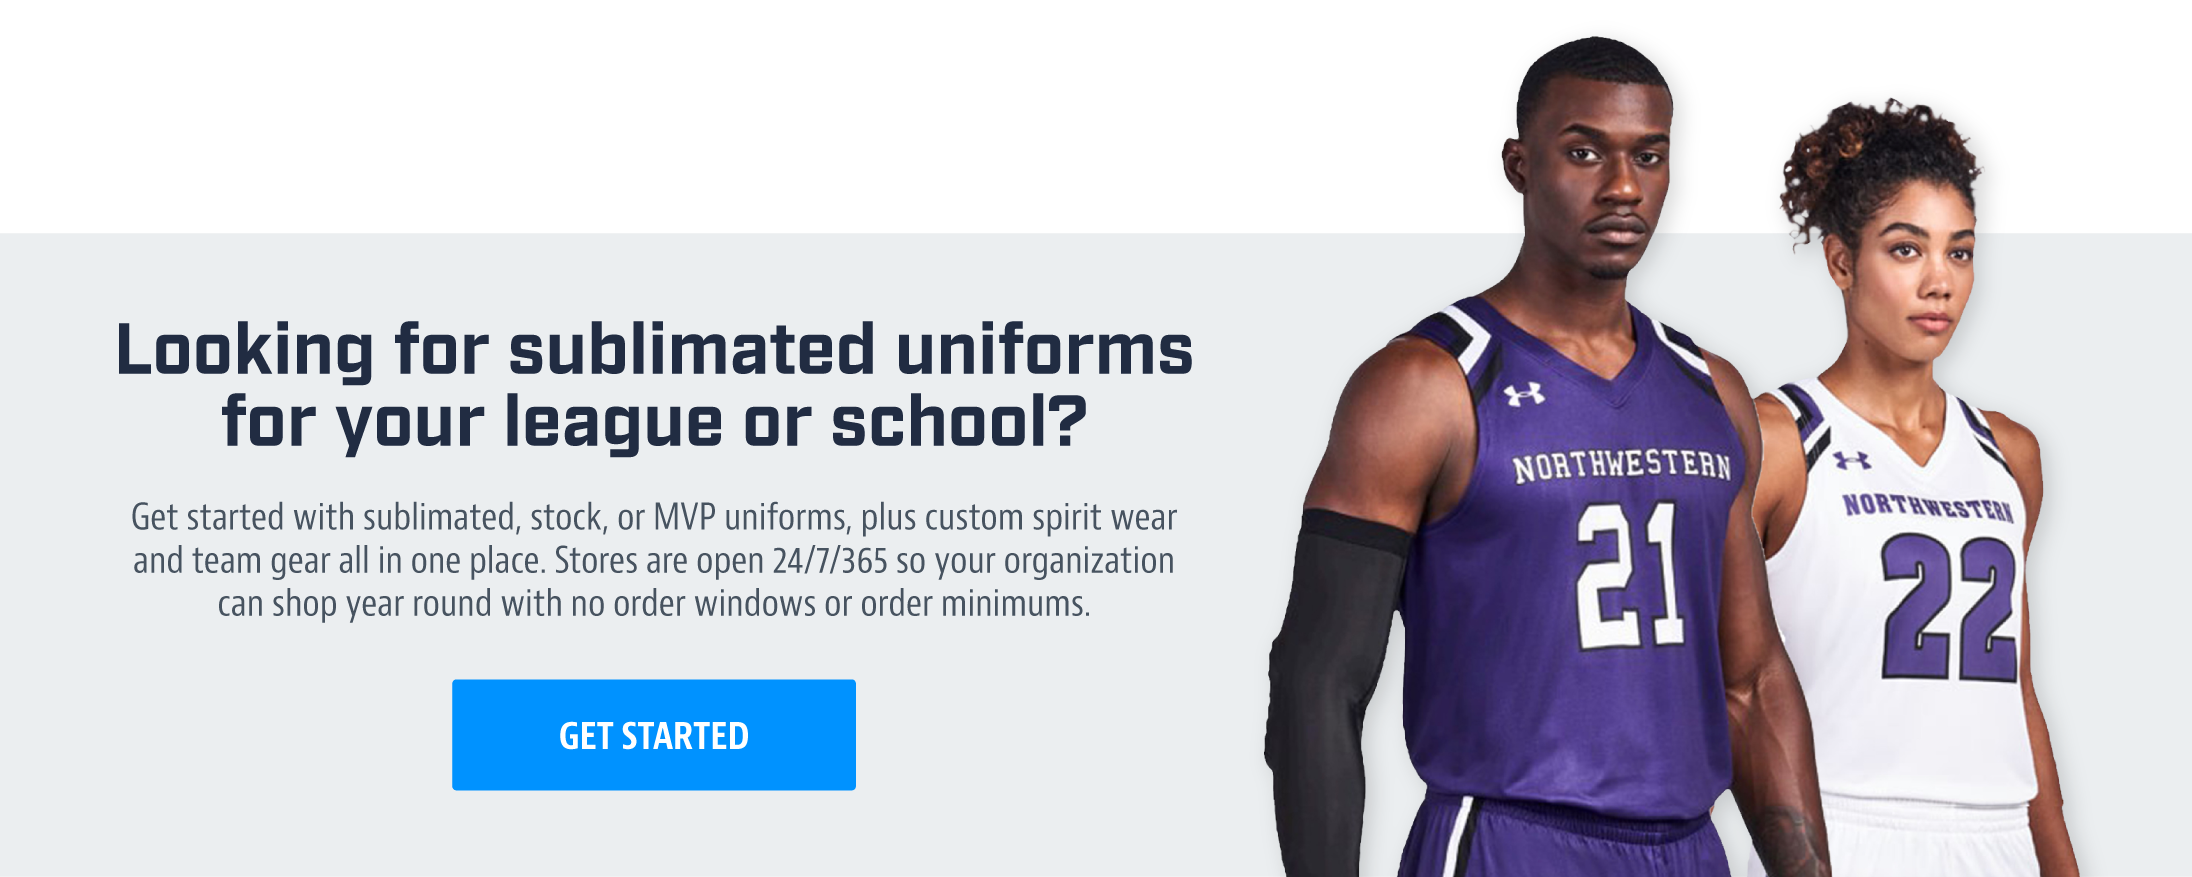 Sublimated Uniforms - Get Started